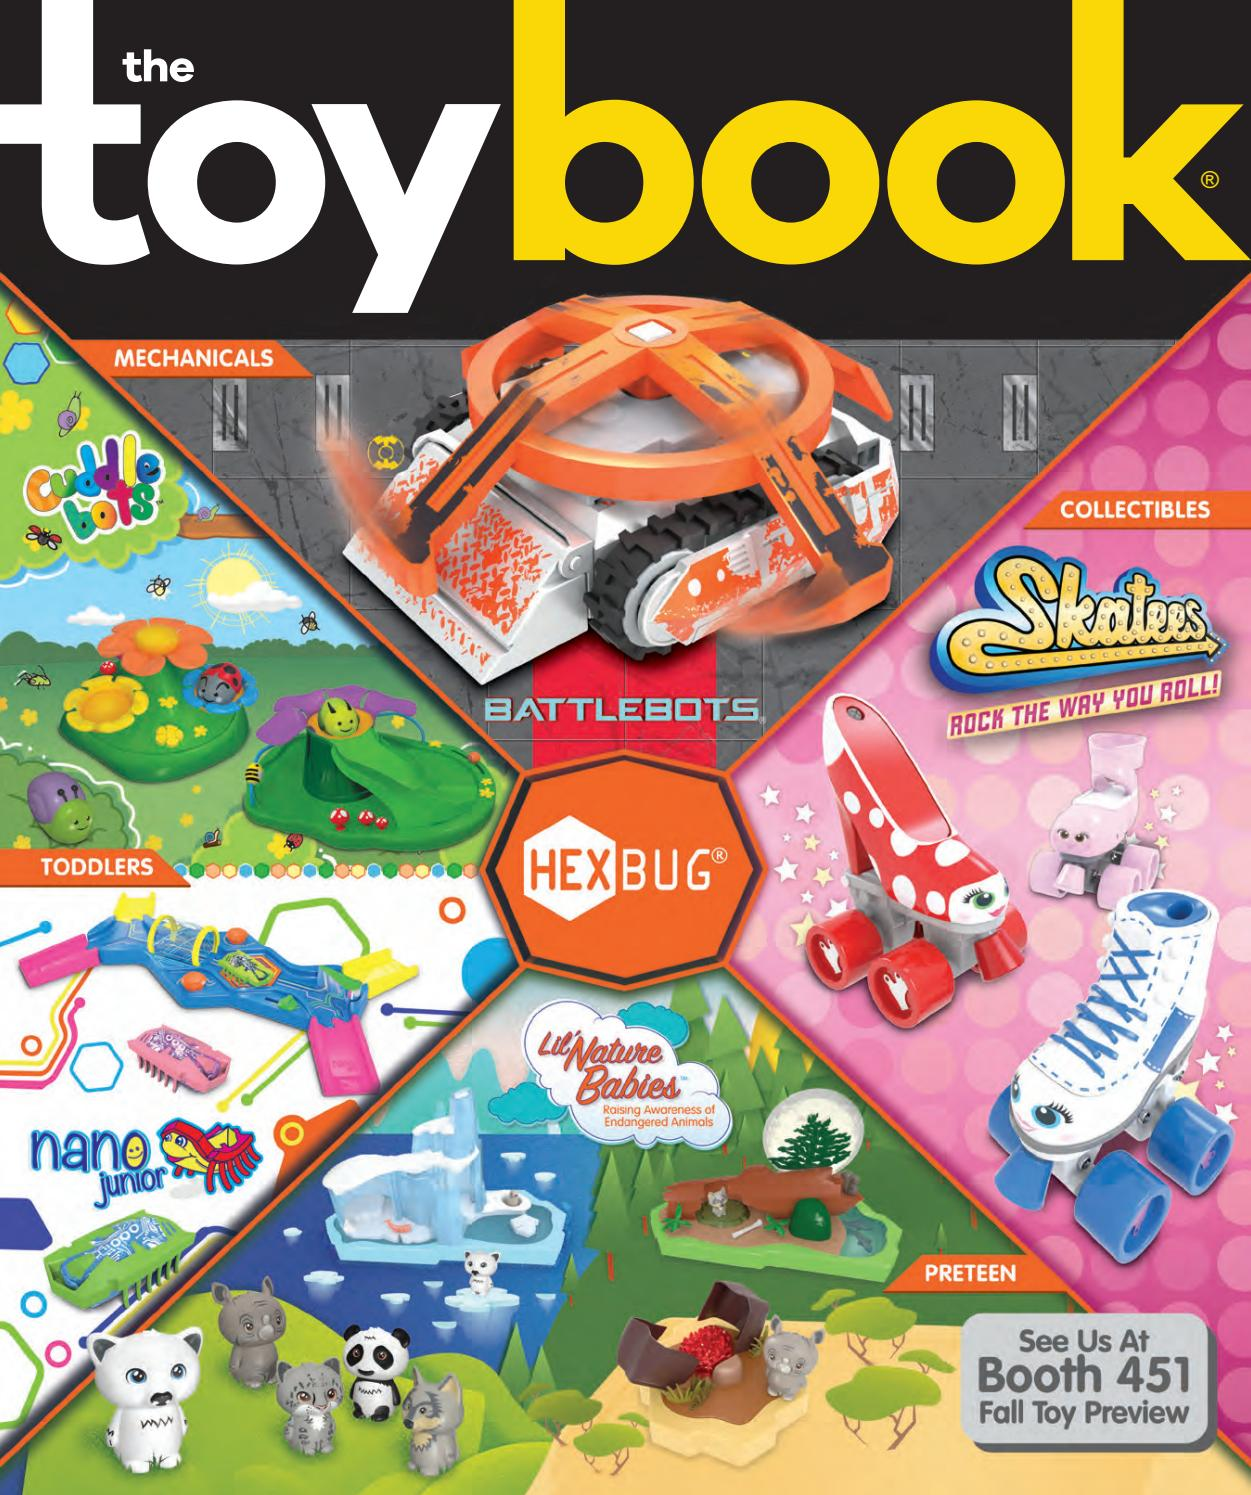 September/October 2018 by The Toy Book - issuu